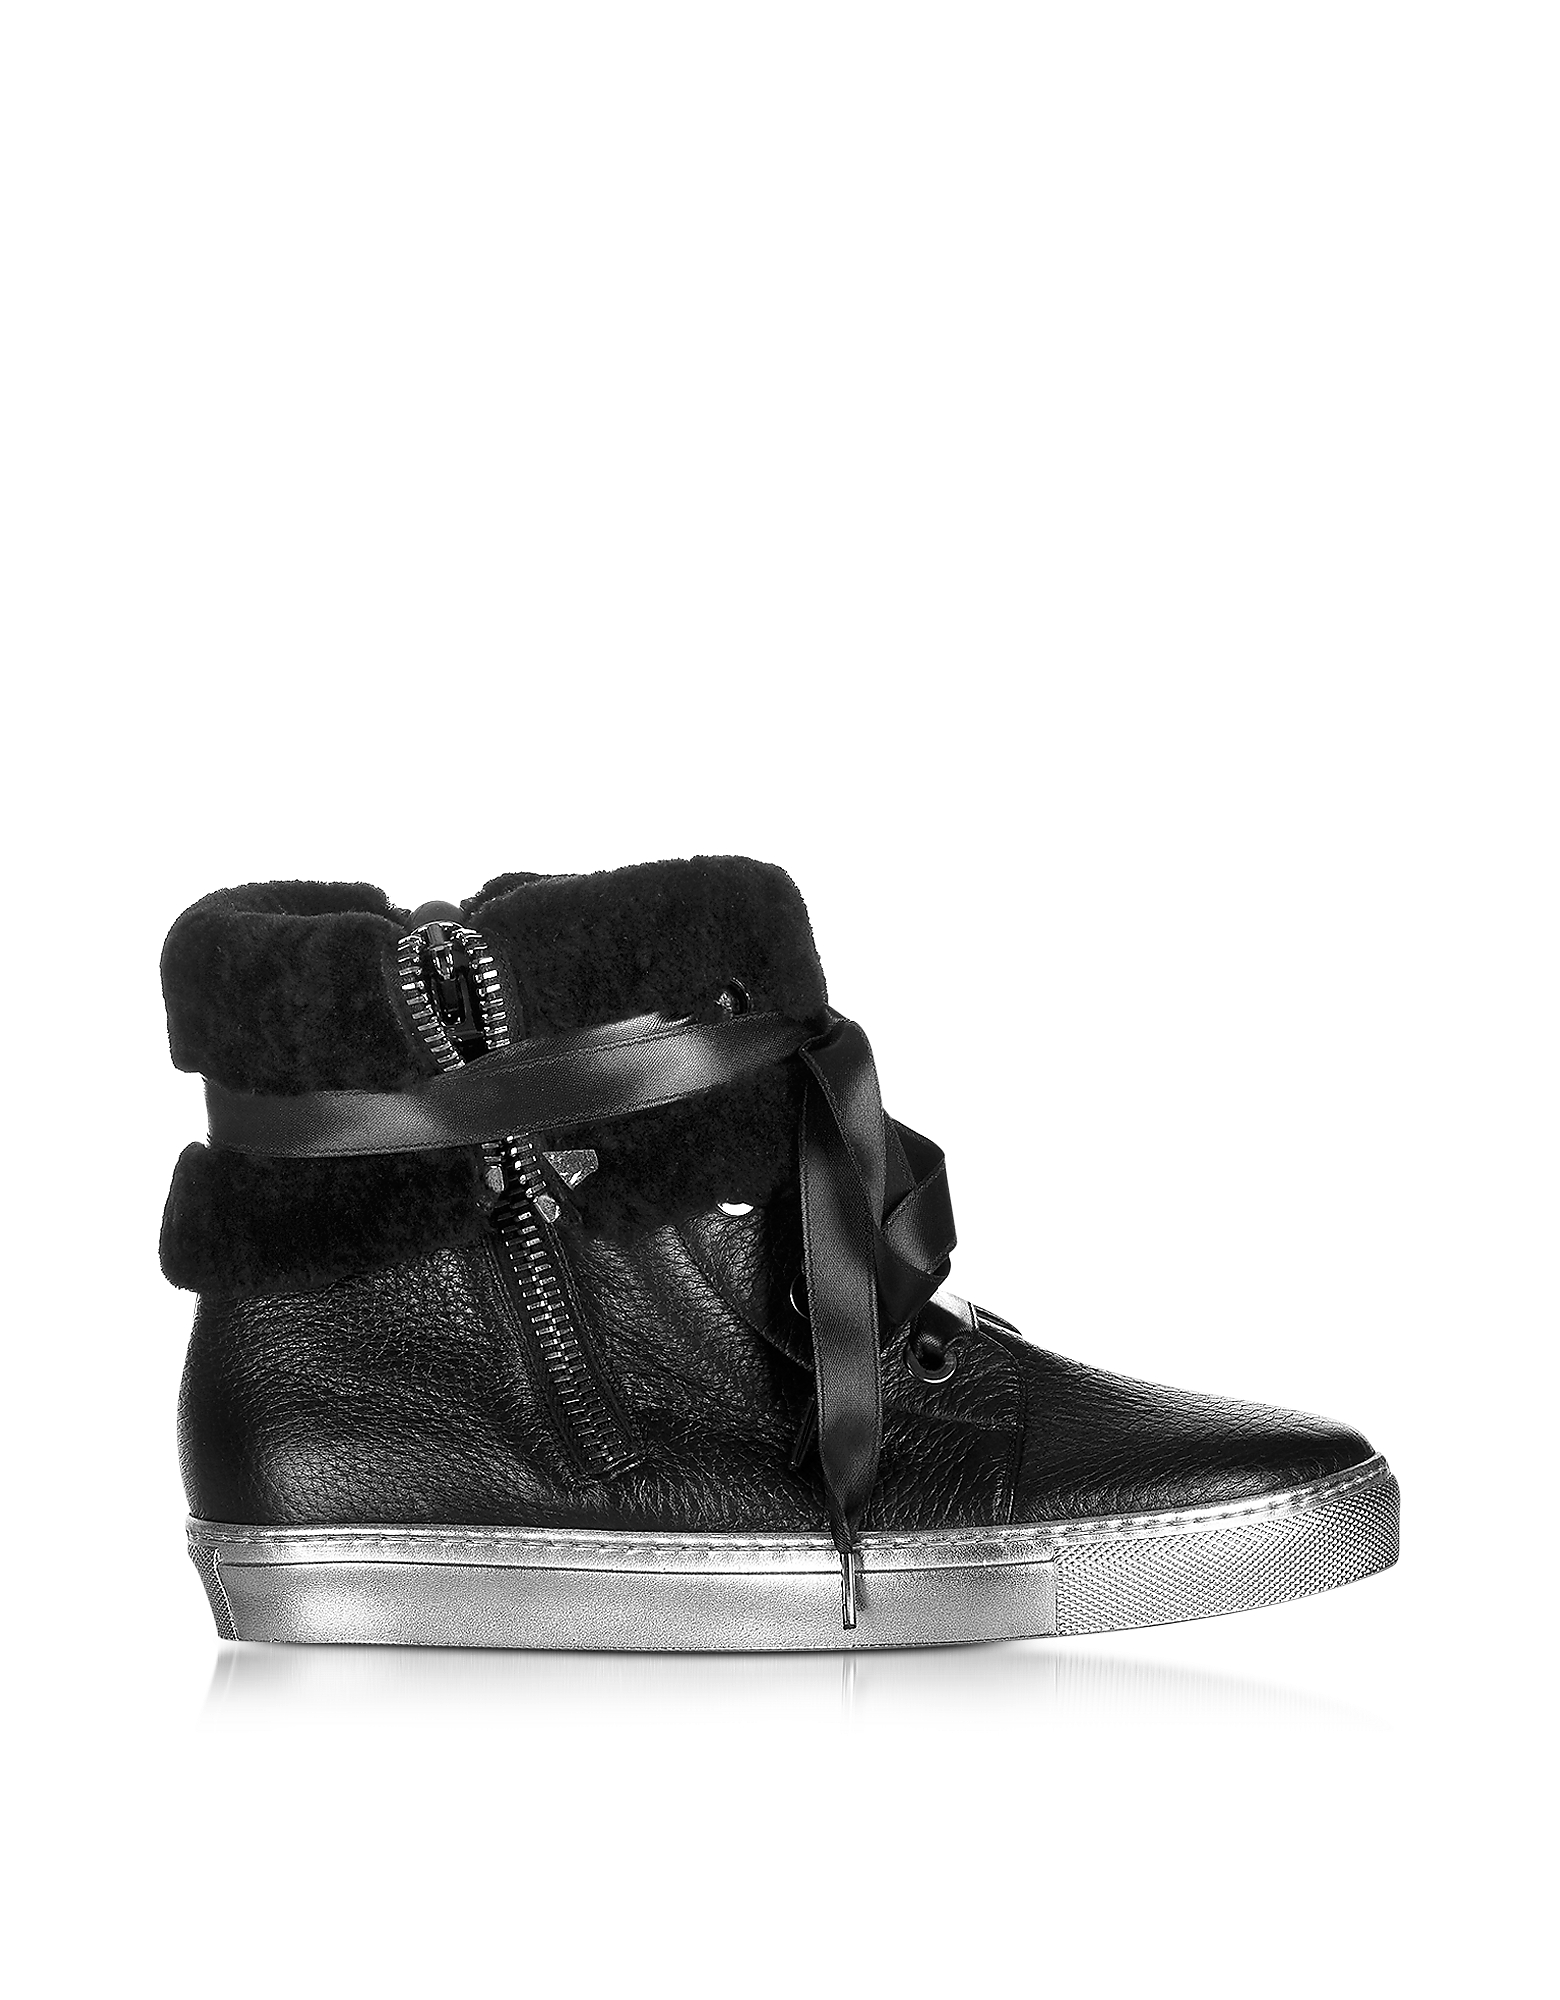 Loriblu Shoes, Cuffed Black Leather Sneaker